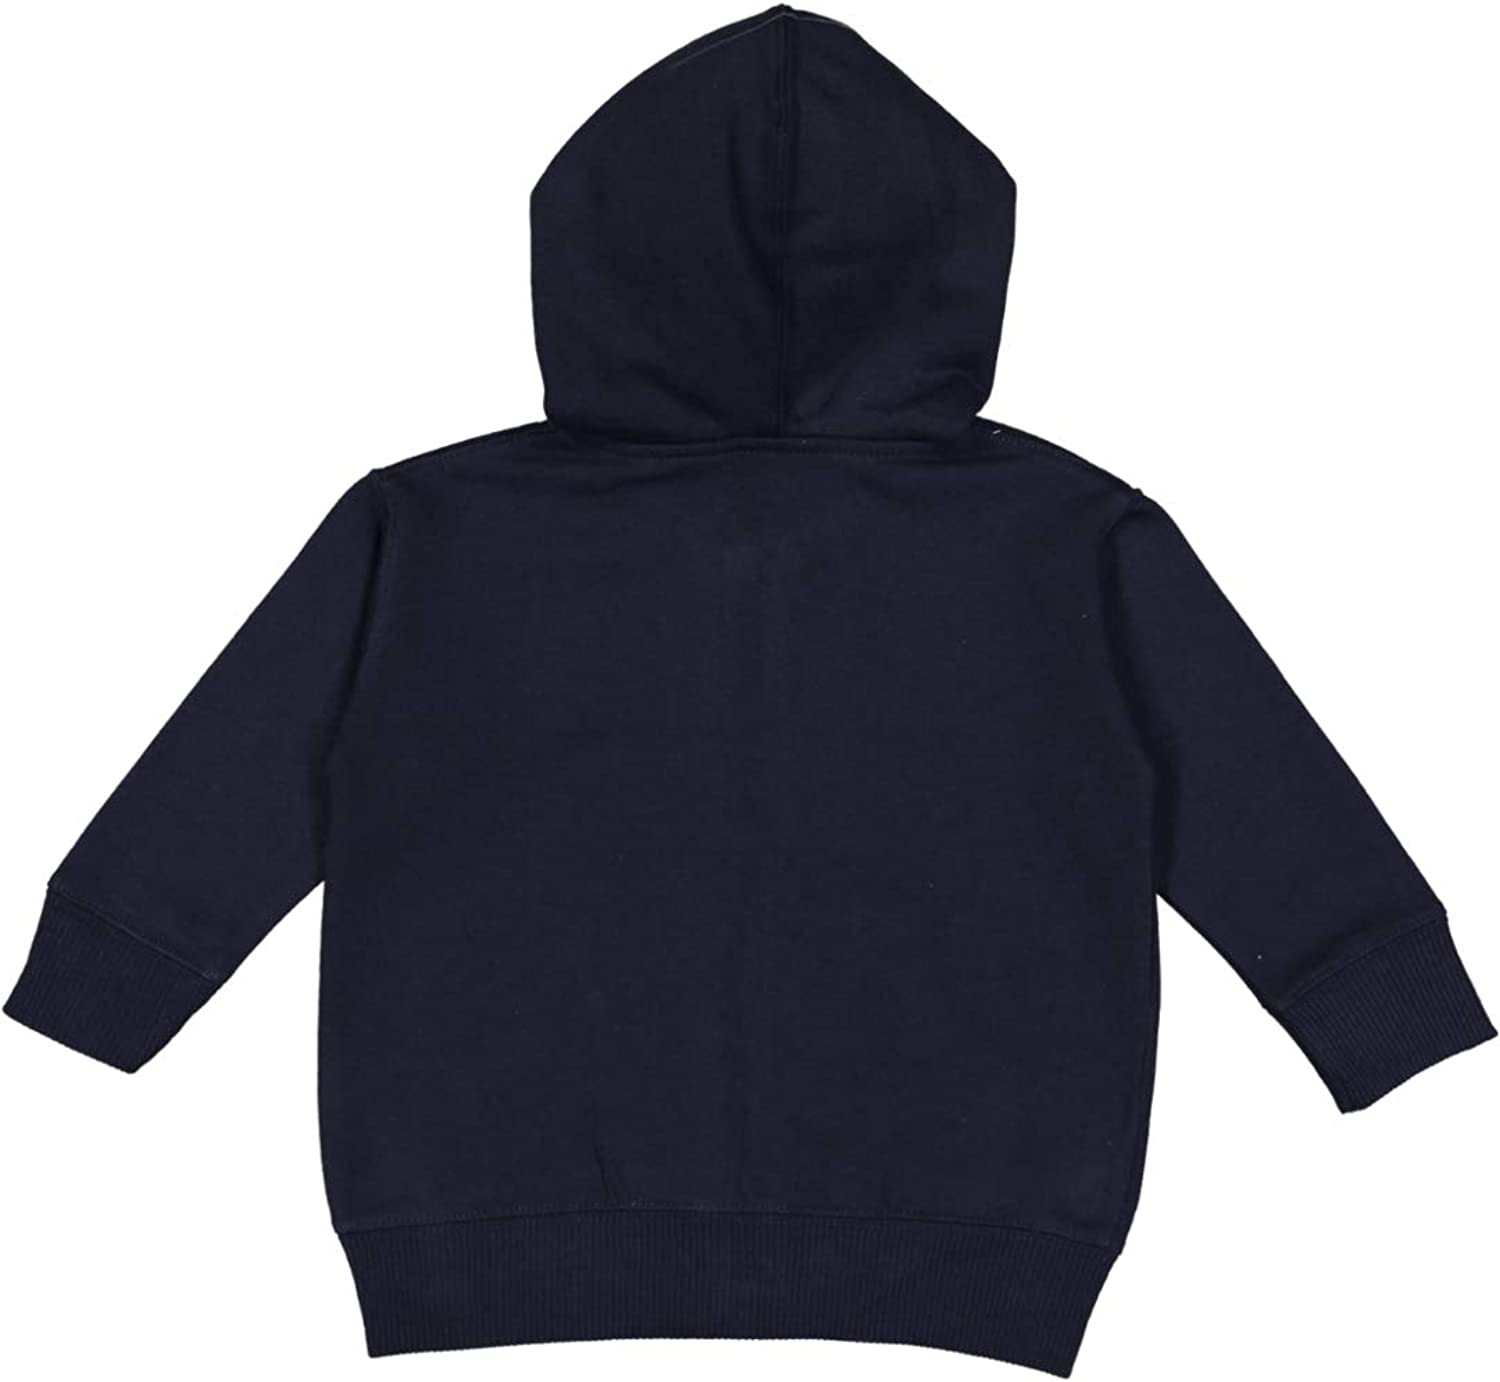 Rabbit Skins Infant Fleece Long Sleeve Full Zip Hooded Sweatshirt with Pouch Pockets Navy 12 Months